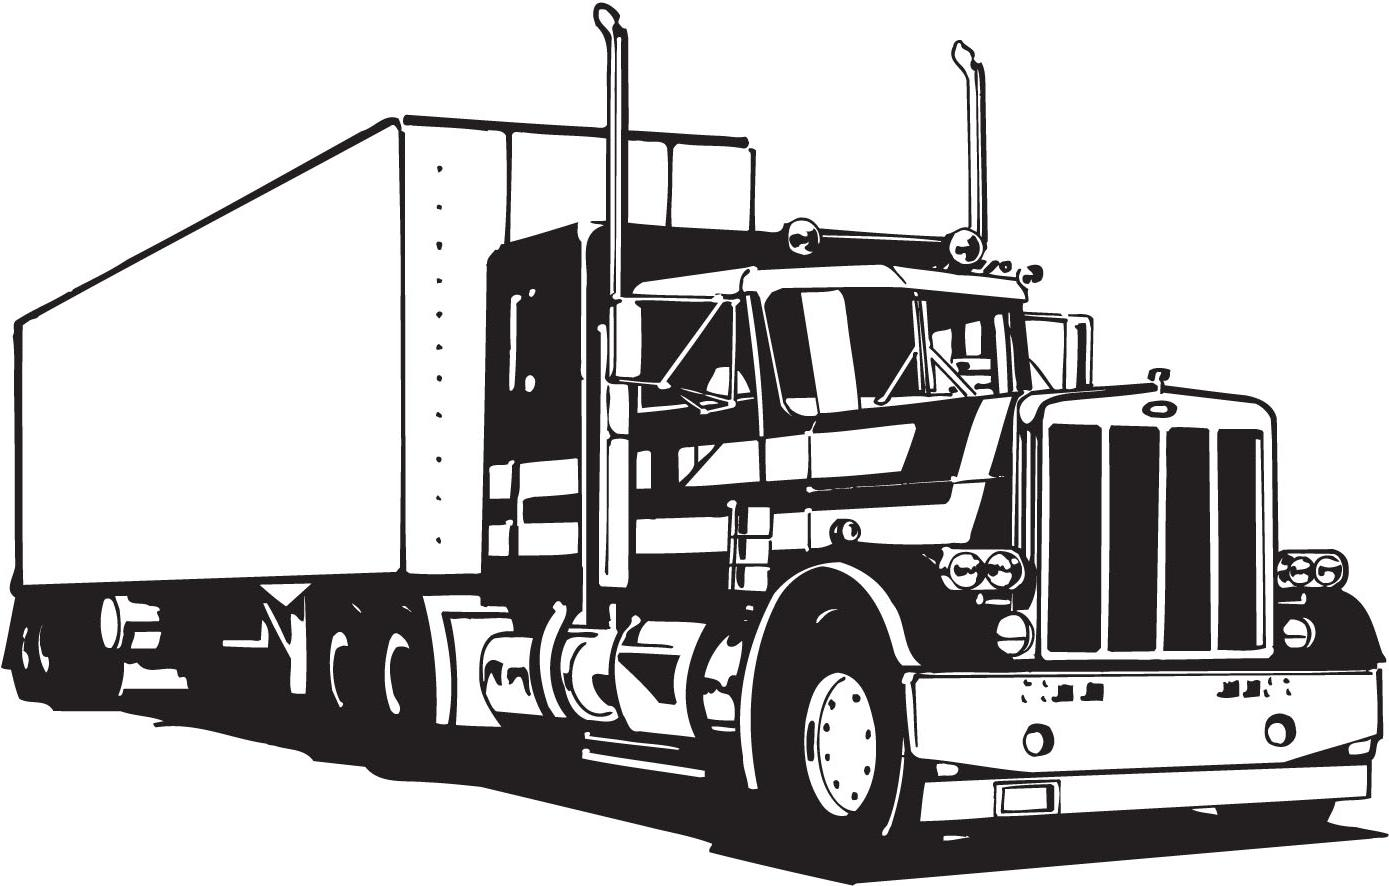 Tractor trailer clipart free svg freeuse download Top Tractor-trailer Clip Art Image » Free Vector Art, Images ... svg freeuse download